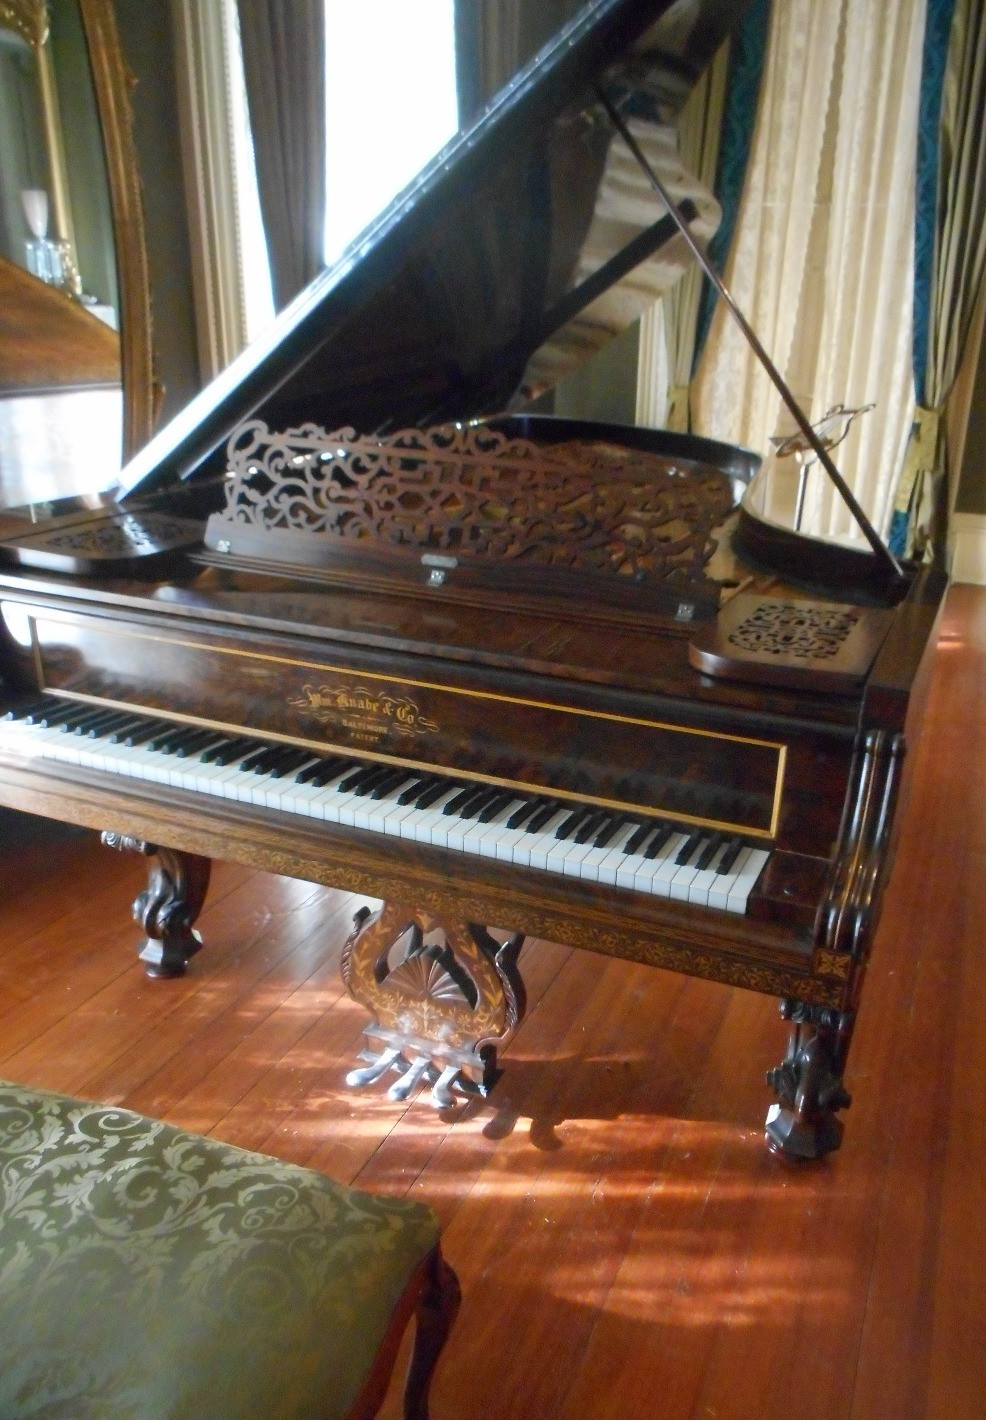 Knobe 7' Grand located in Centre Hill Mansion